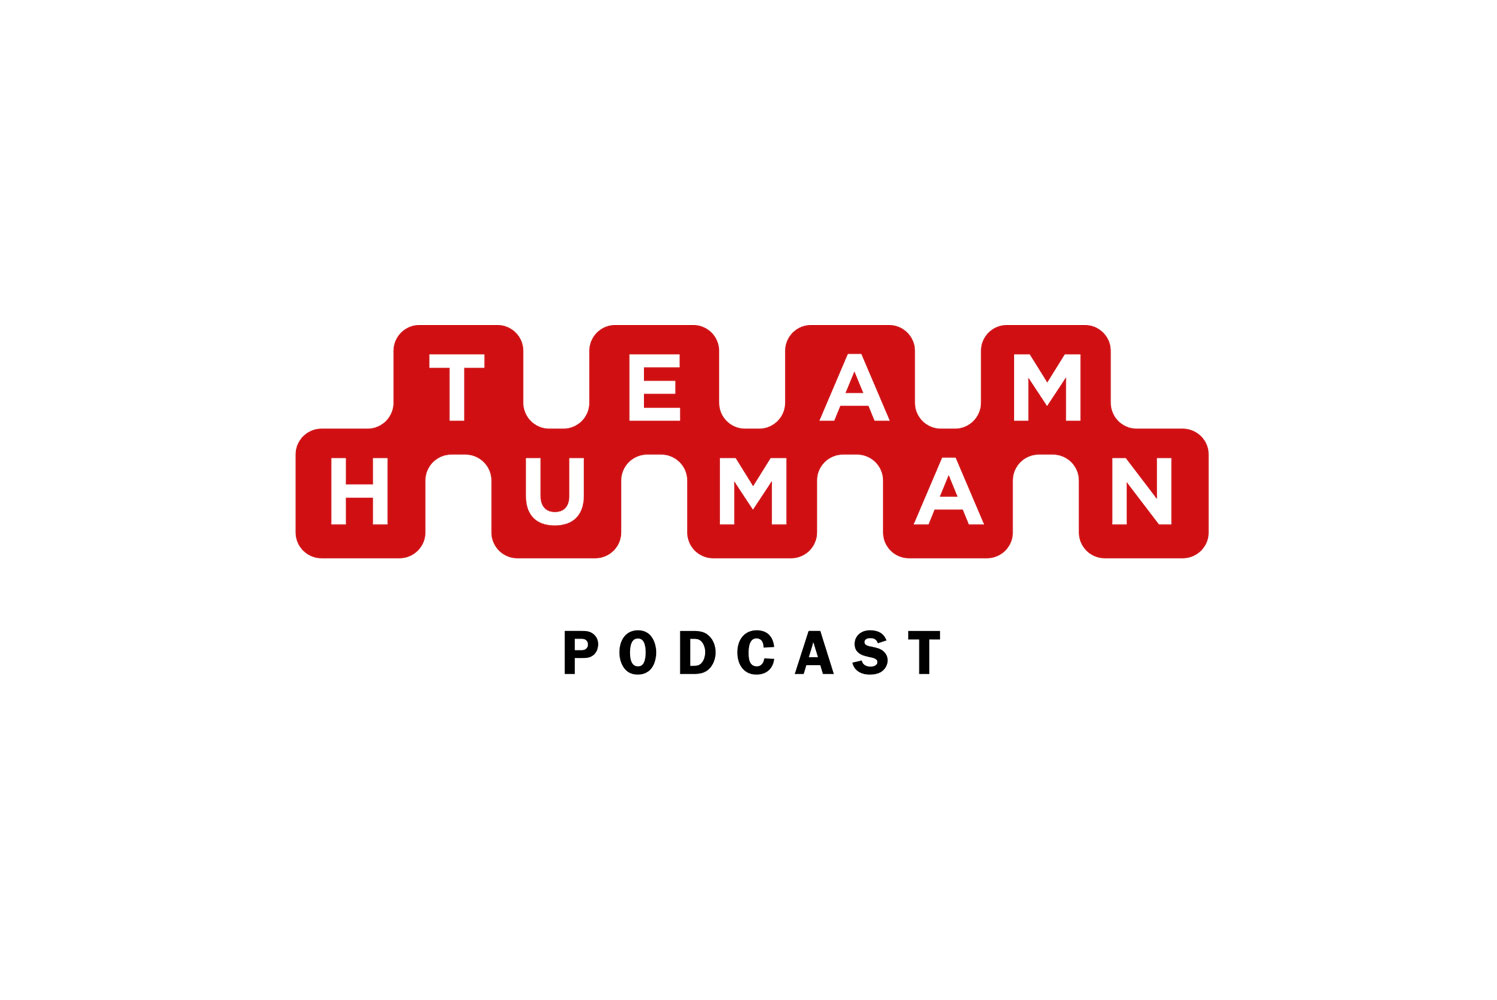 Cover image: Team Human